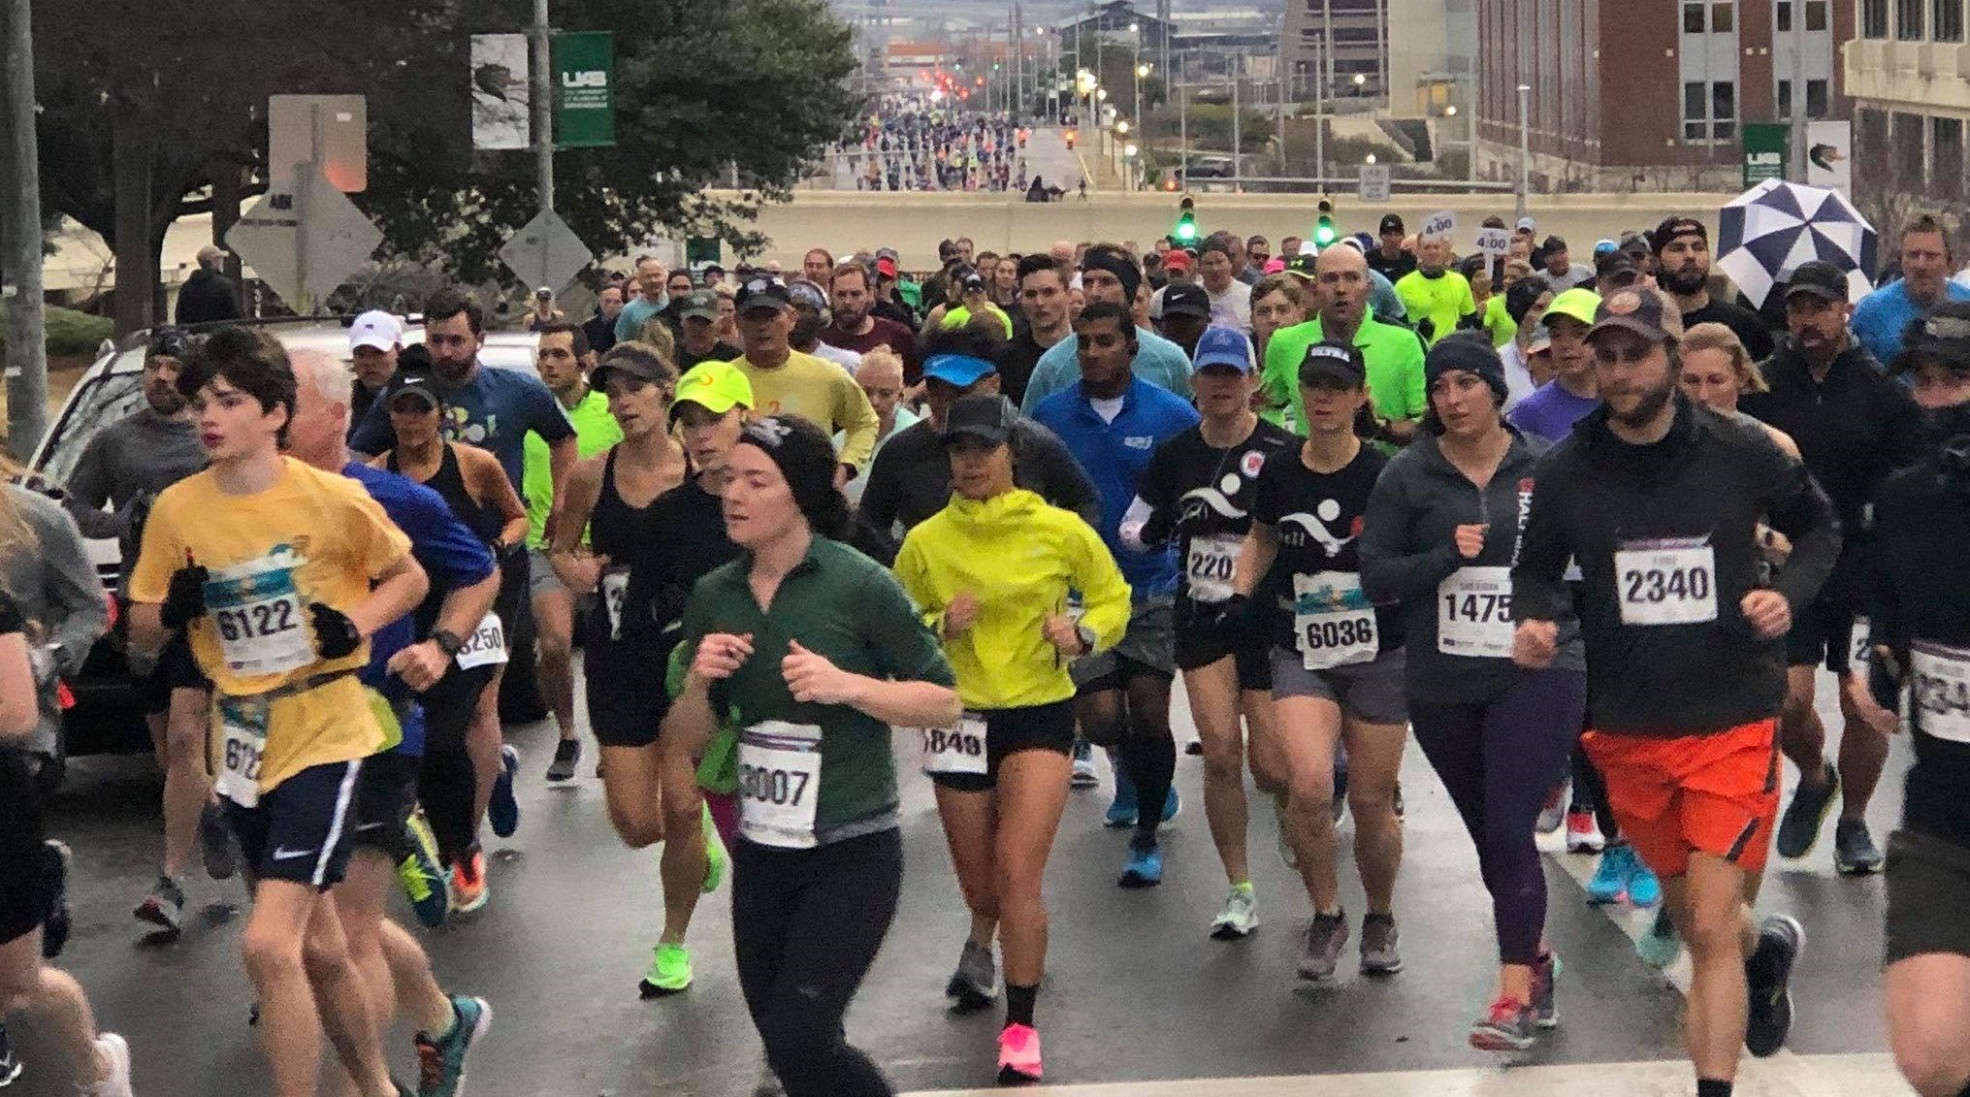 Get results from 9th annual Mercedes Marathon in Birmingham - al.com